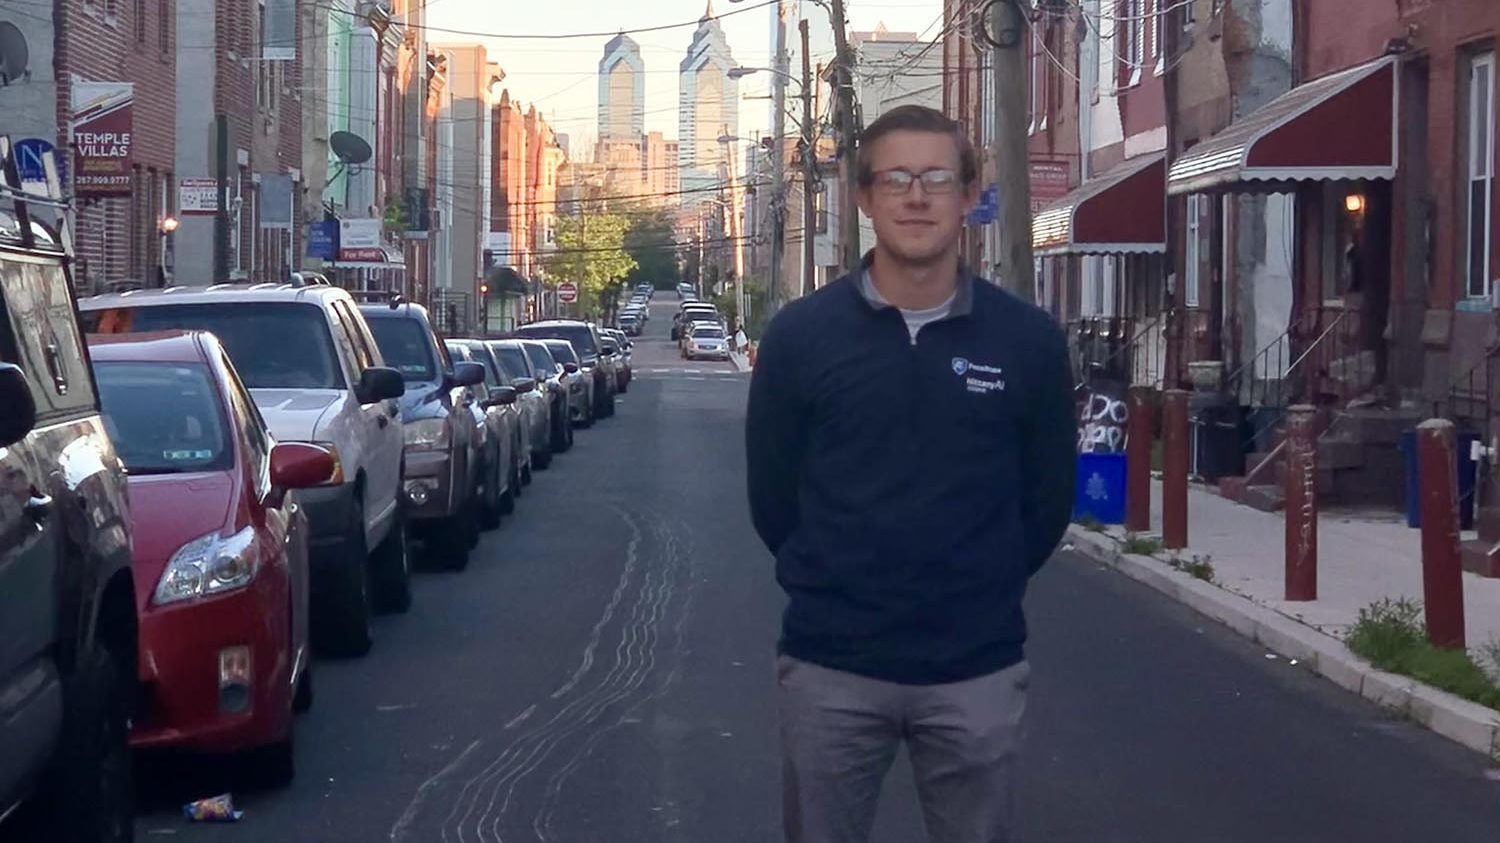 A man with light brown hair and glasses in a dark blue long sleeved shirt, gray pants and white sneakers is standing in the middle of the street with the Philadelphia city skyline in the background and parked cars on the left